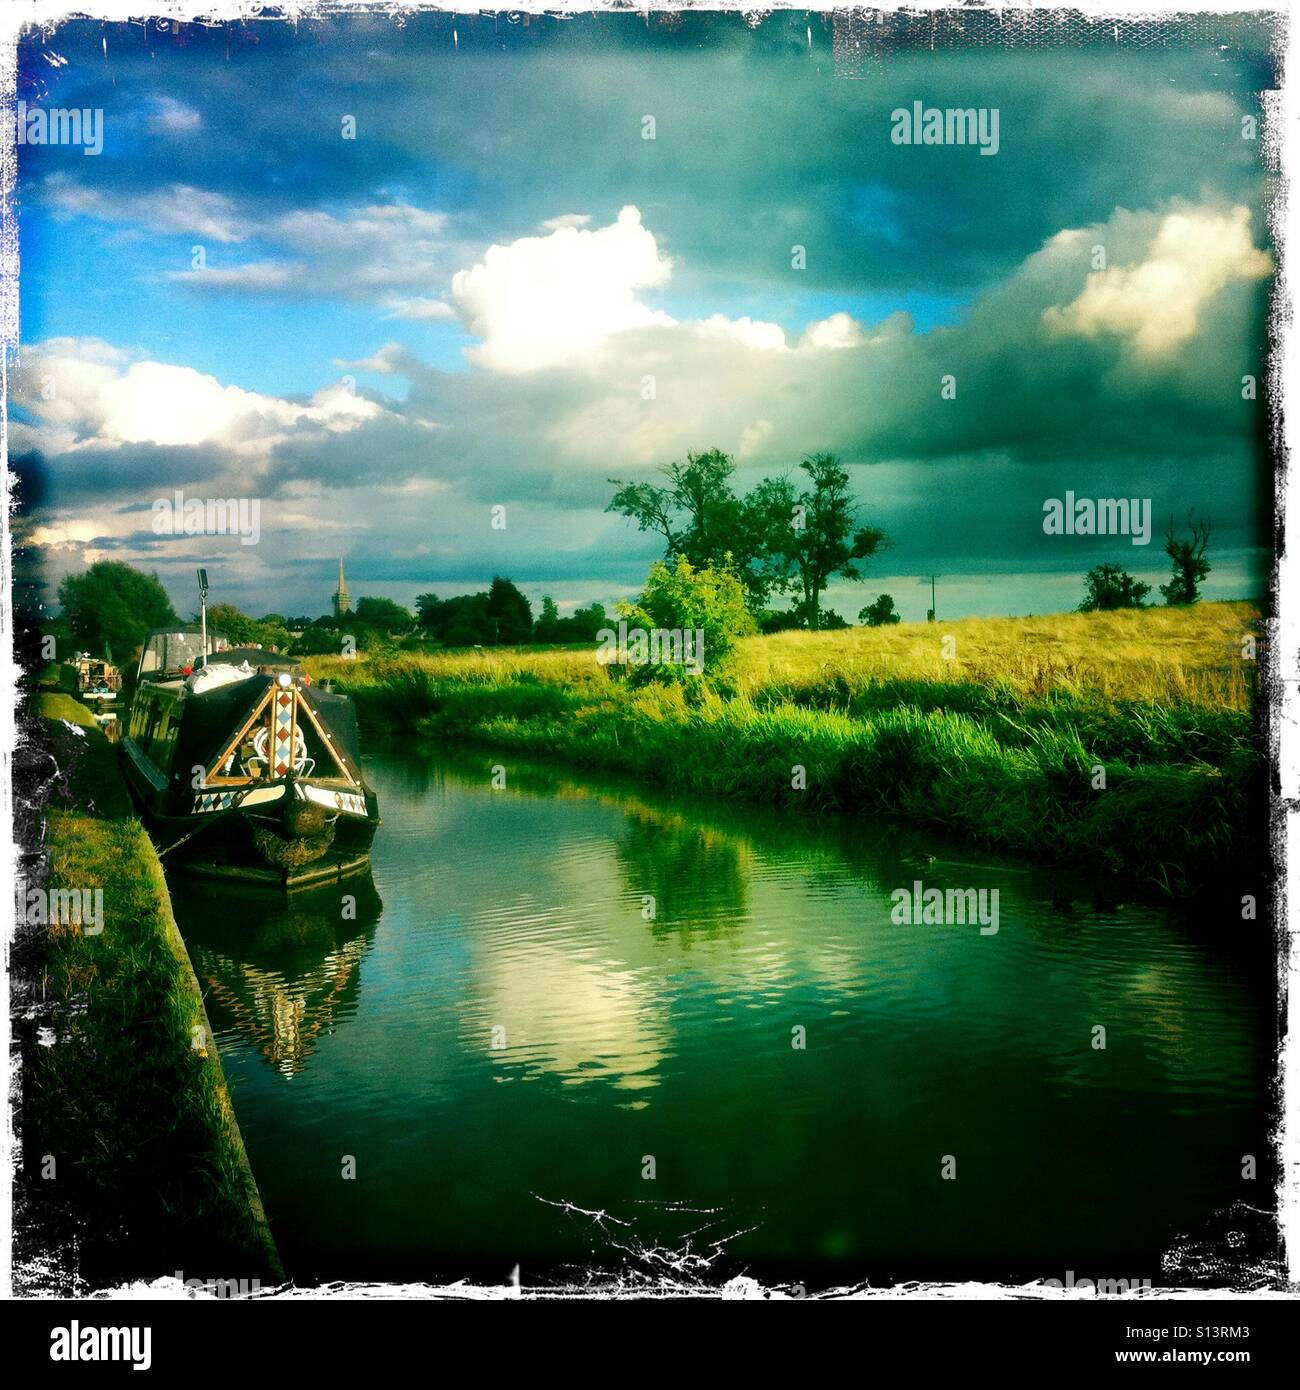 Oxford canal near King's Sutton, Oxfordshire. - Stock Image